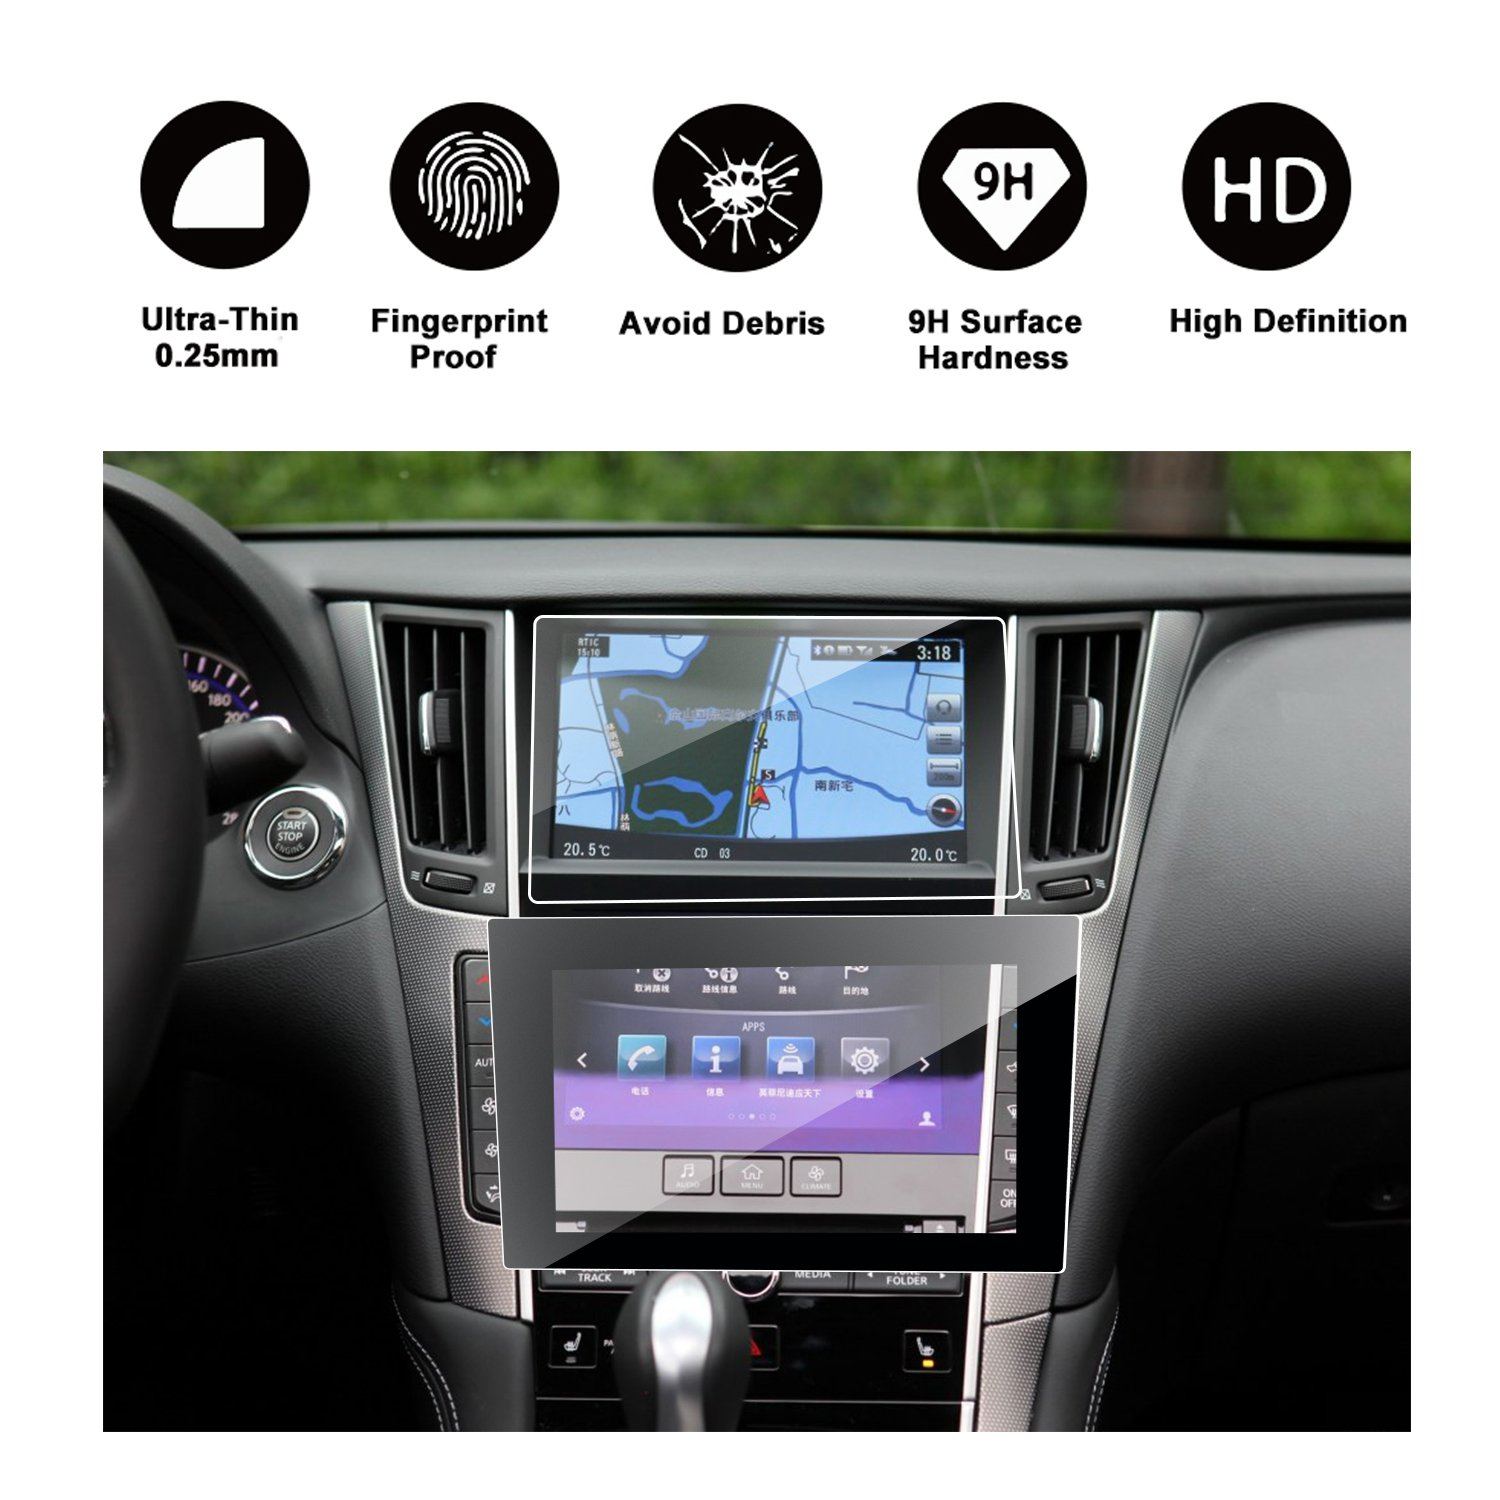 RUIYA 2016 2017 2018 Infiniti Q50 Q60 Car Navigation and Bottom Touch Screen Protective Film Combined Package (Pack of 2),8-Inch Clear Tempered Glass HD and Protect Your Eyes by RUIYA